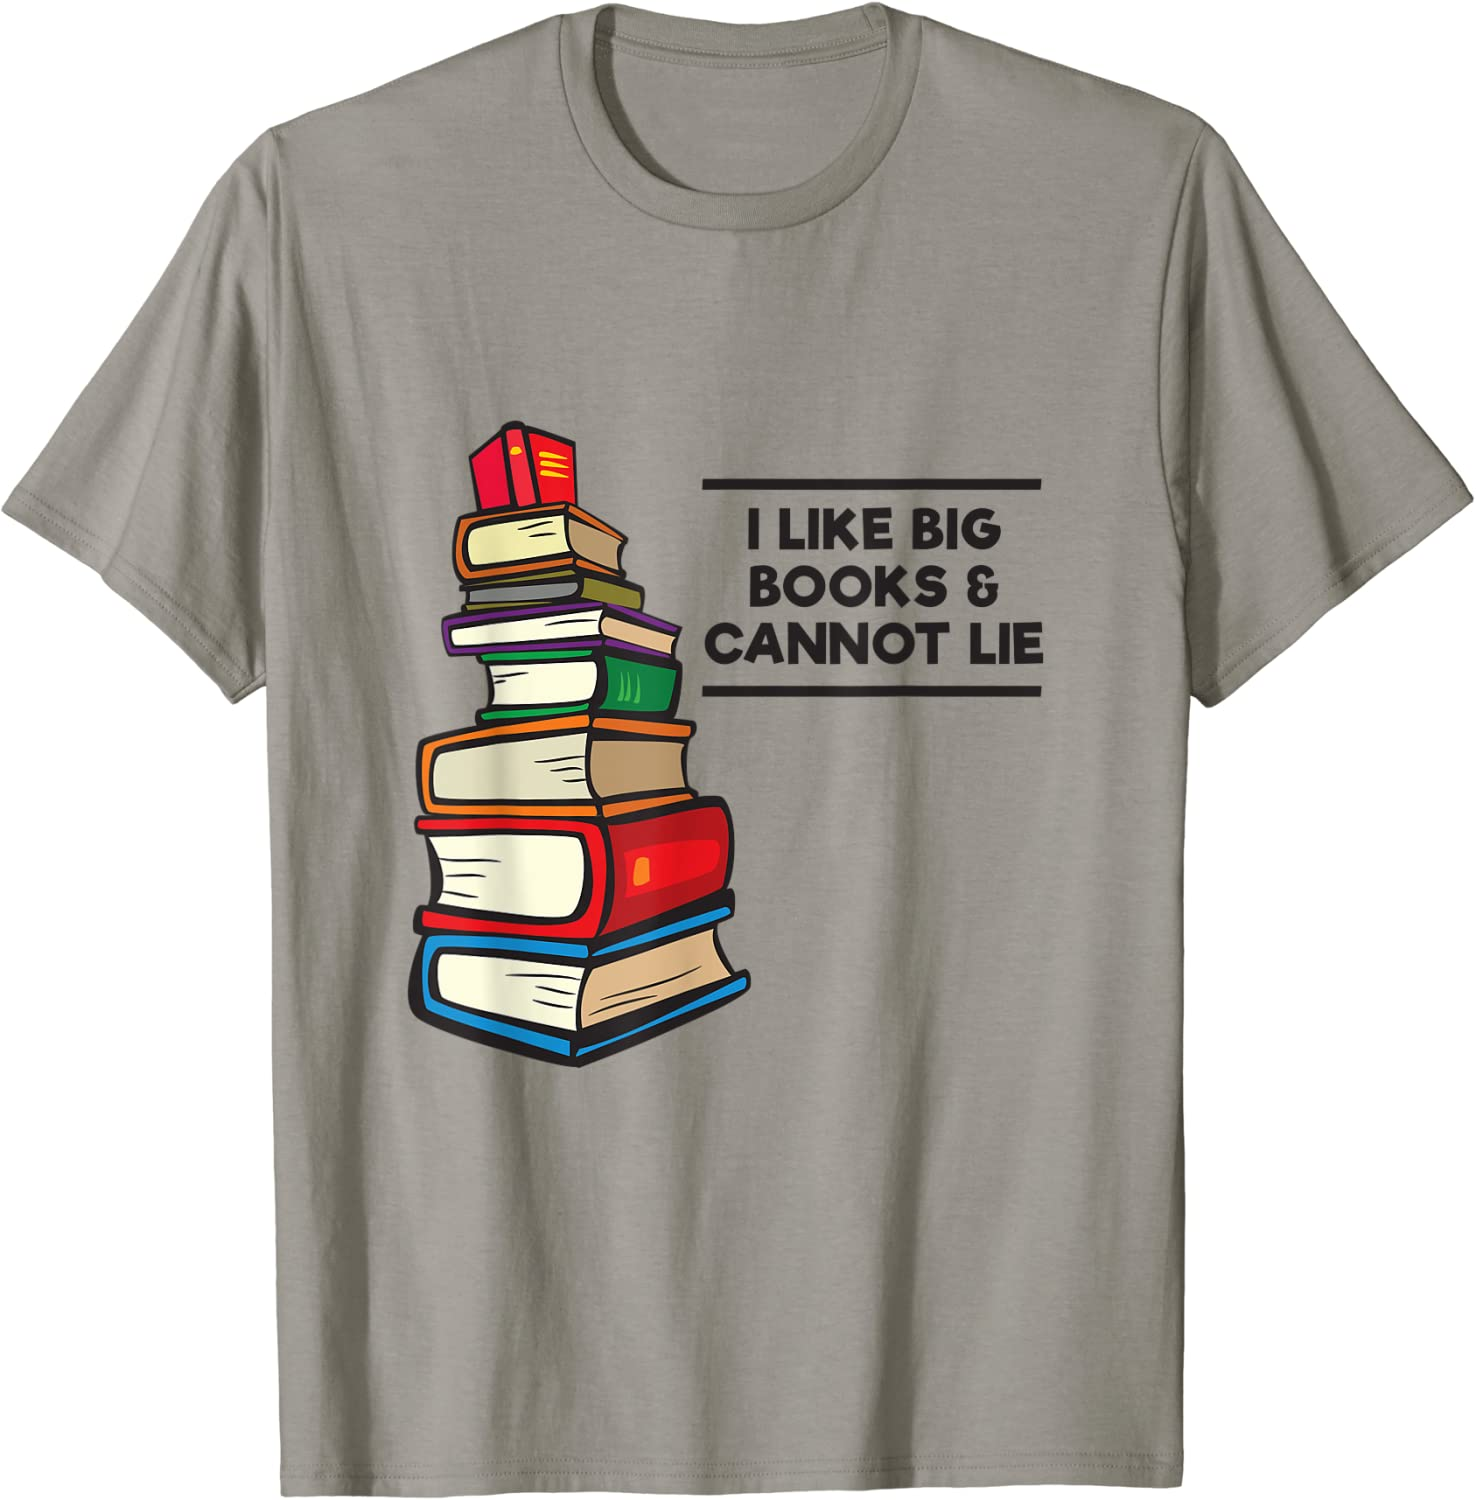 I Like Big Books and Cannot Lie Book Lover Humor Graphic T-Shirt